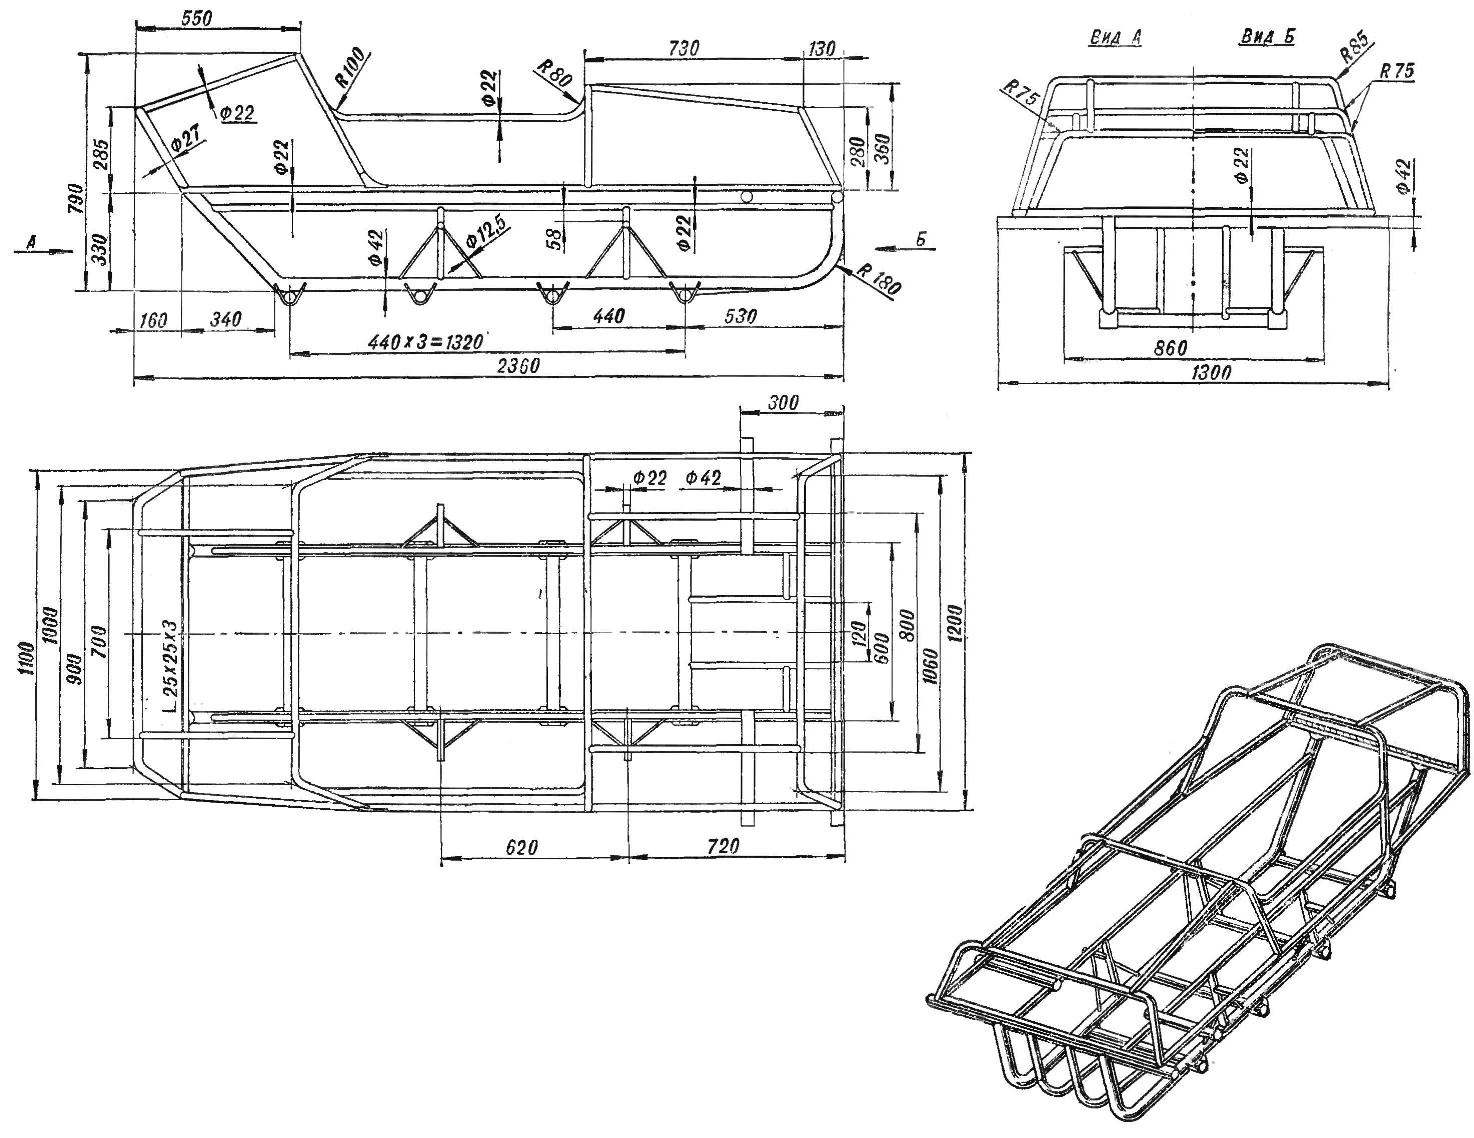 Fig. 2. Frame and frame of the vehicle.